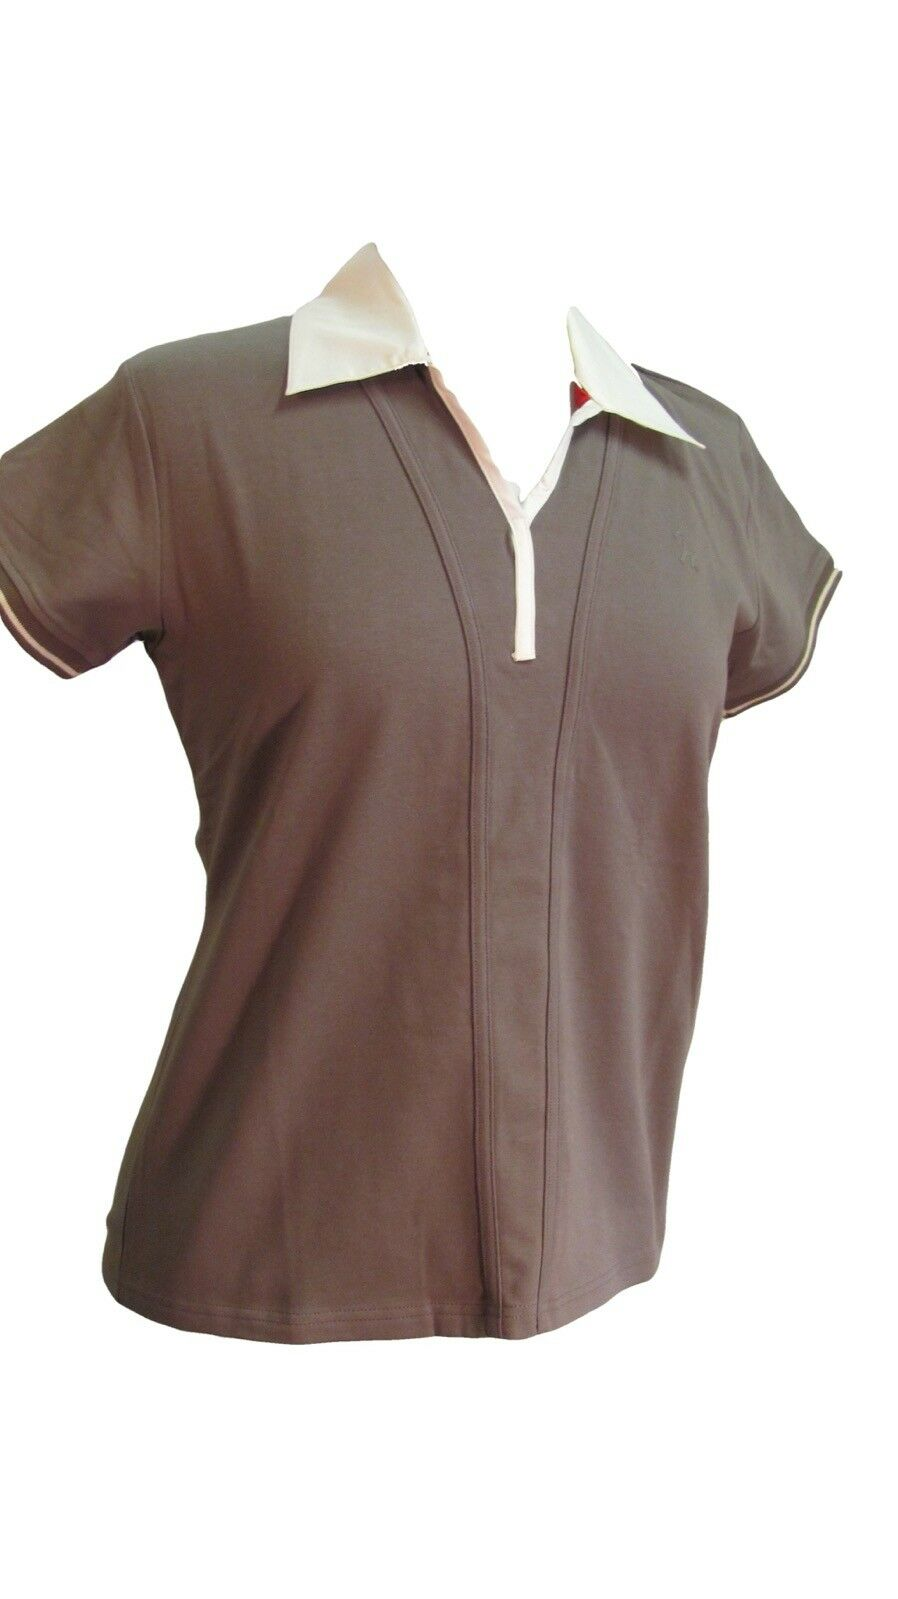 Isabell Werth Ideal Equestrian Show Shirt, Tundra (Cocoa) Brown, Short Sleeve